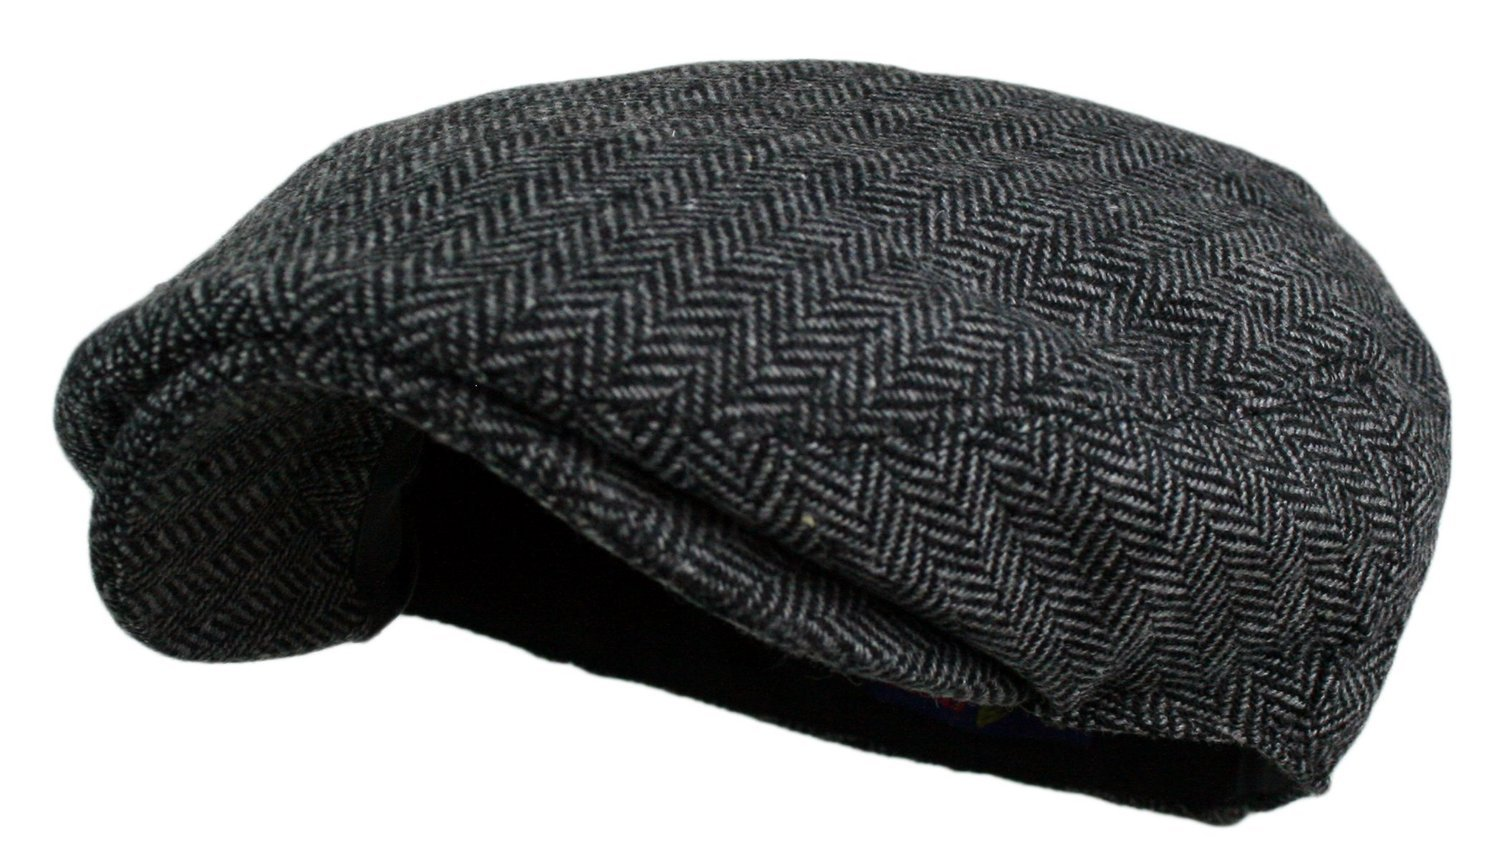 Wonderful Fashion Men's Herringbone Tweed Wool Blend Snap Front Newsboy Hat (DK.Grey, LXL)